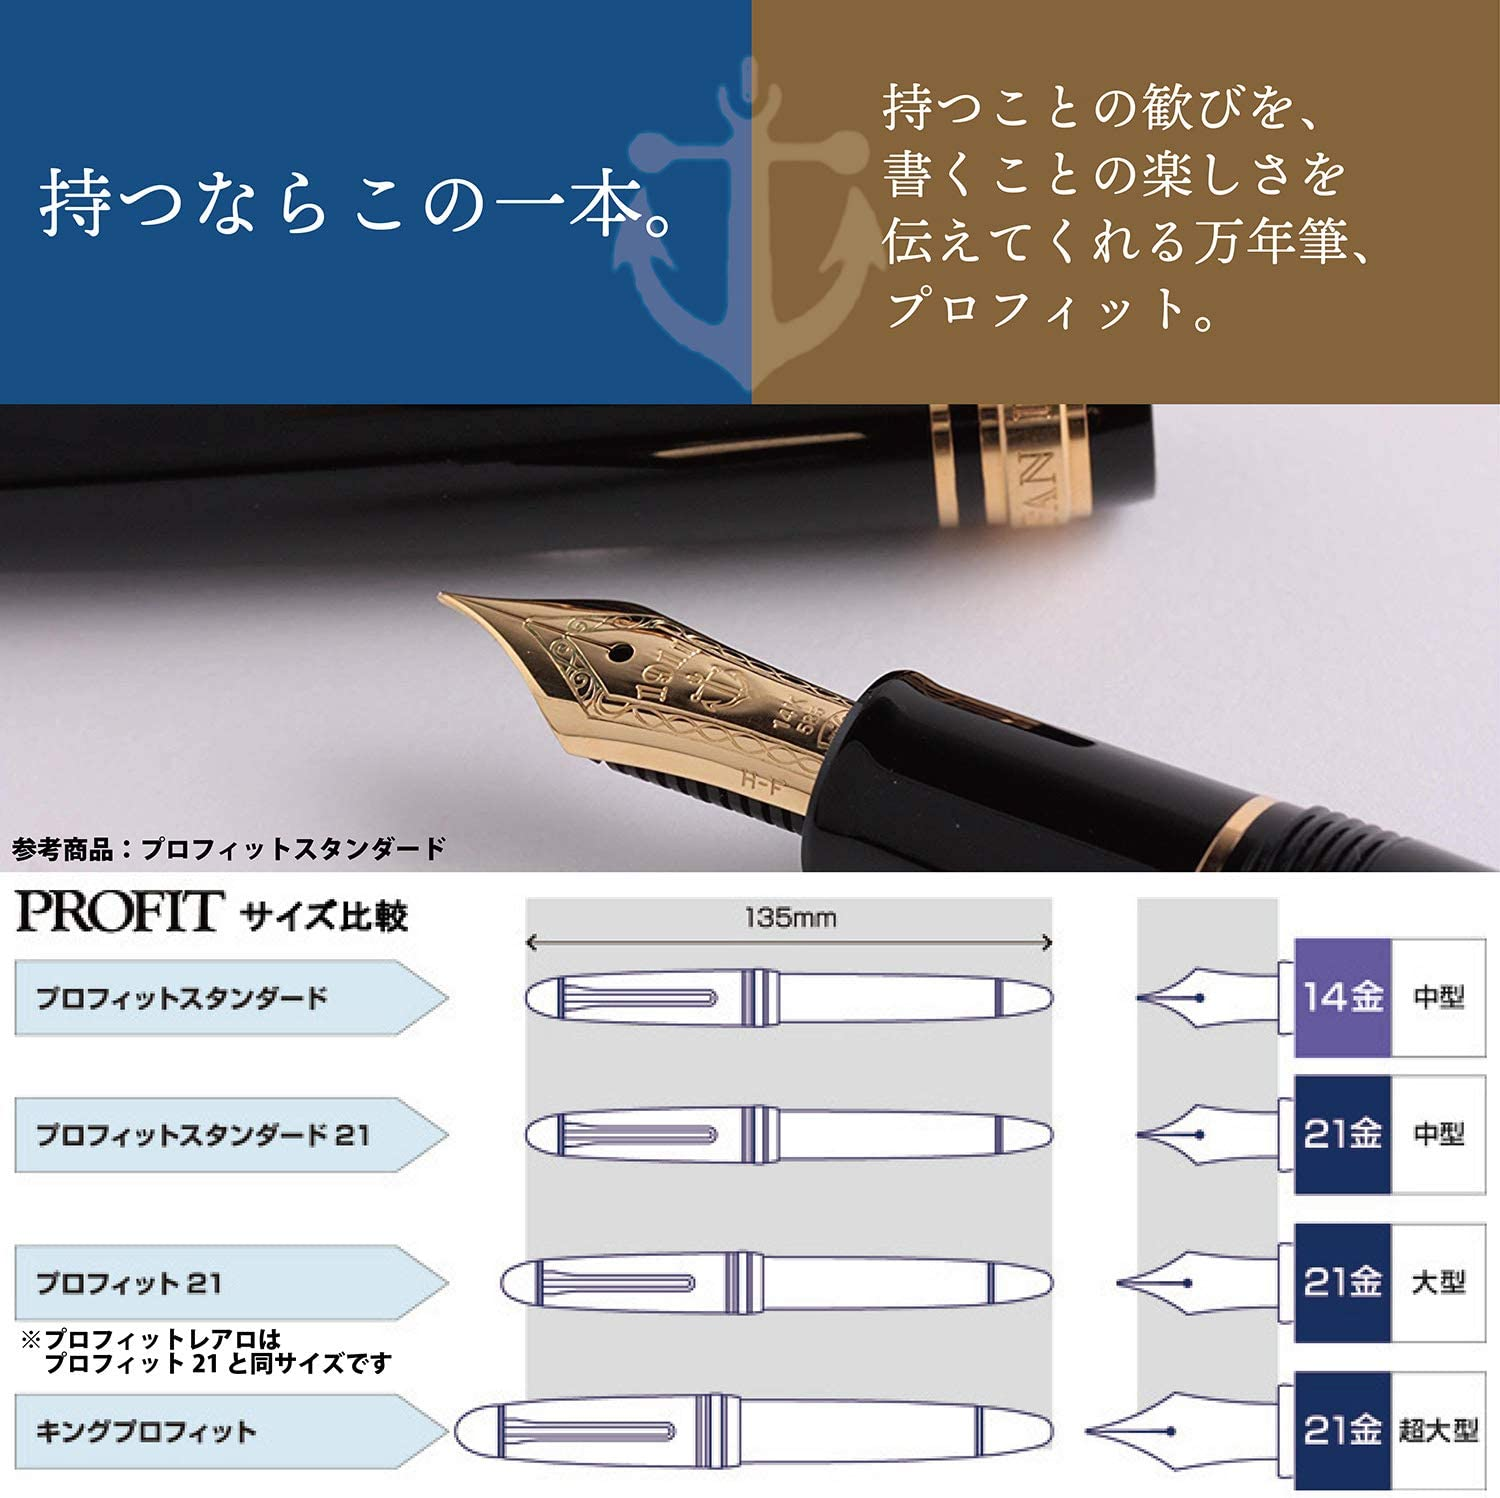 21kt Zoom Nib Limited edition Sailor 1911 Large Fountain Pen in Royal Amethyst